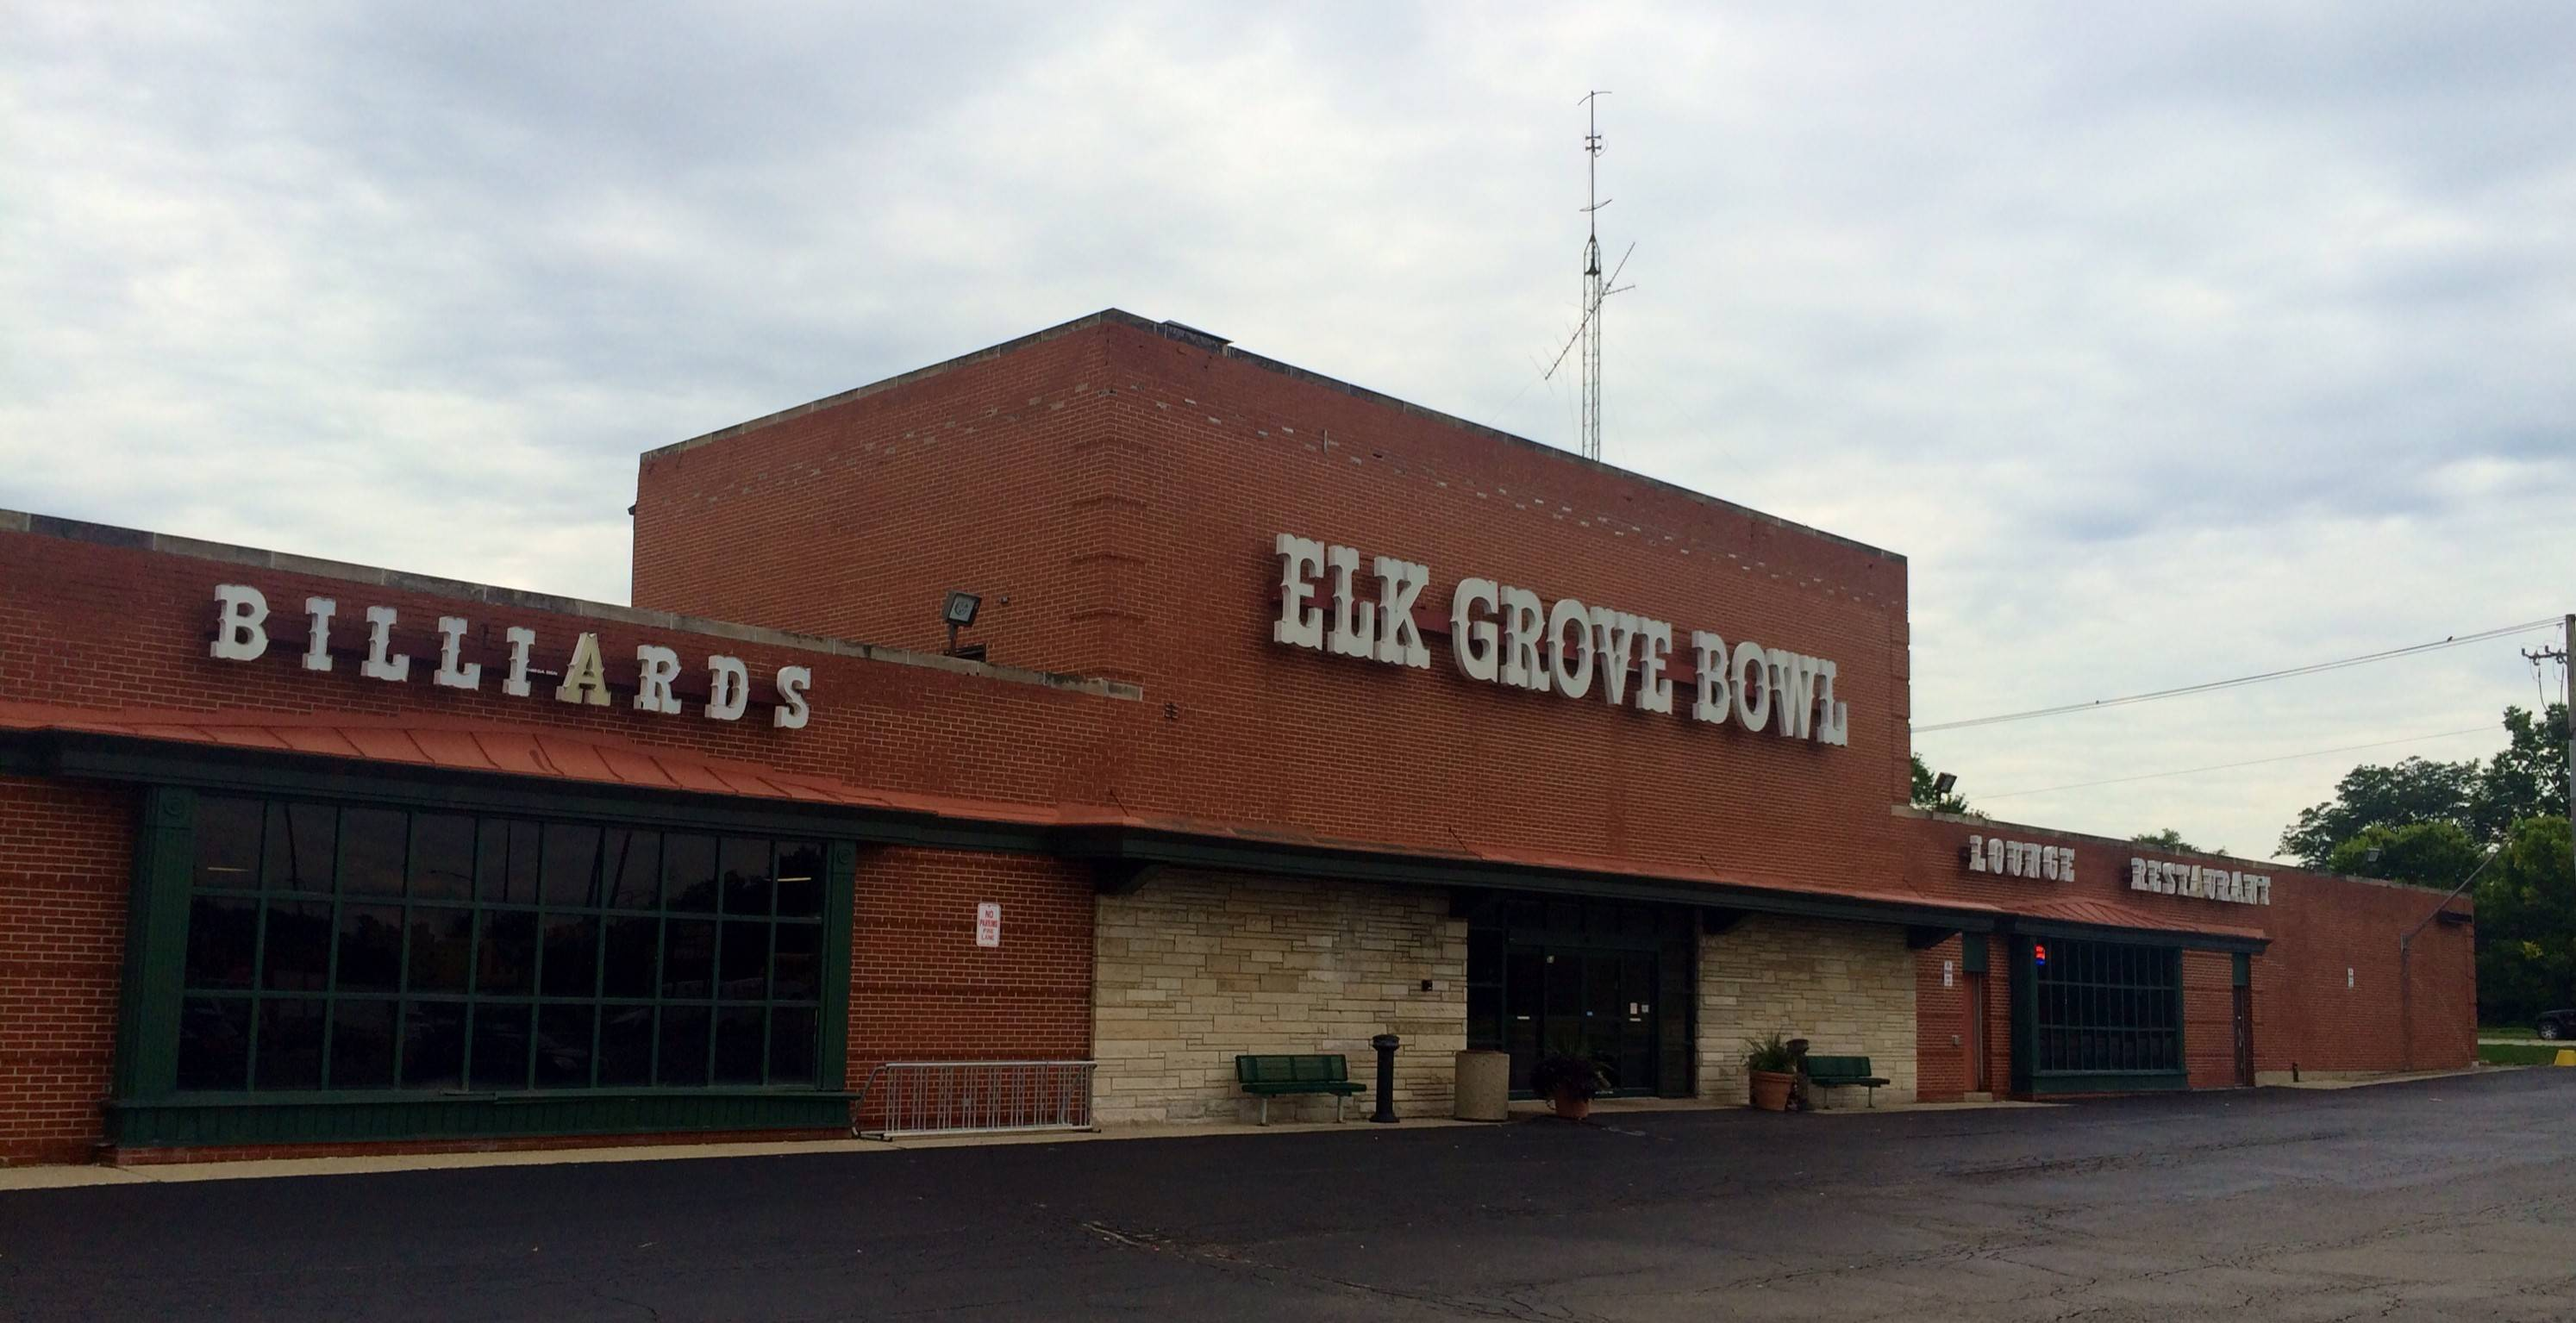 Elk Grove Bowl owner likes Elk Grove's (college) bowl sponsorship